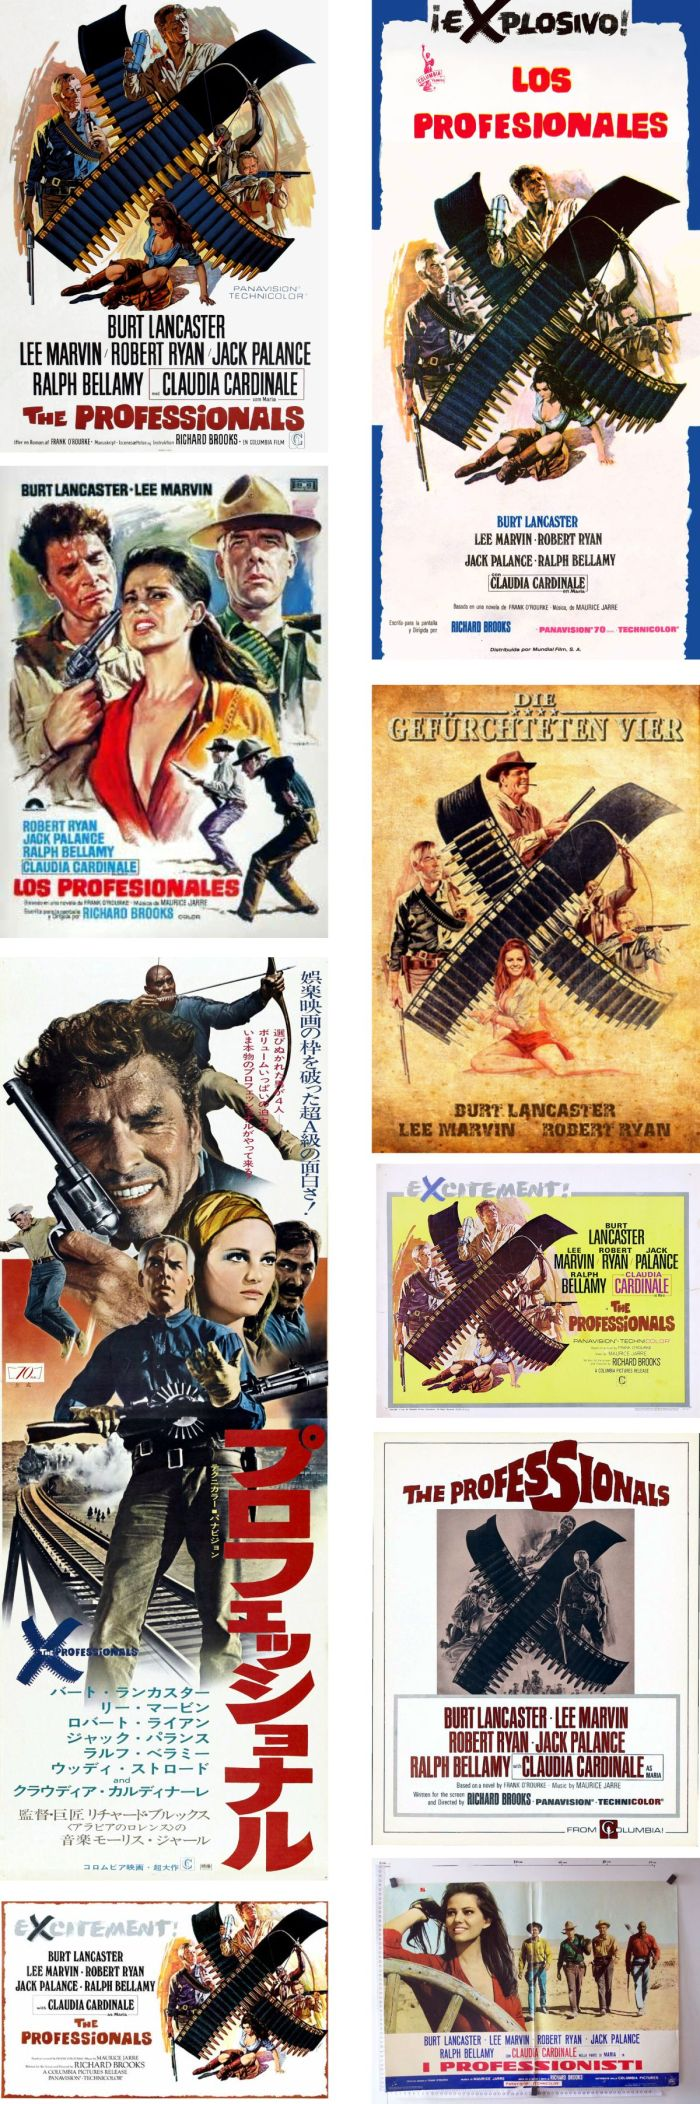 The Professionals posters